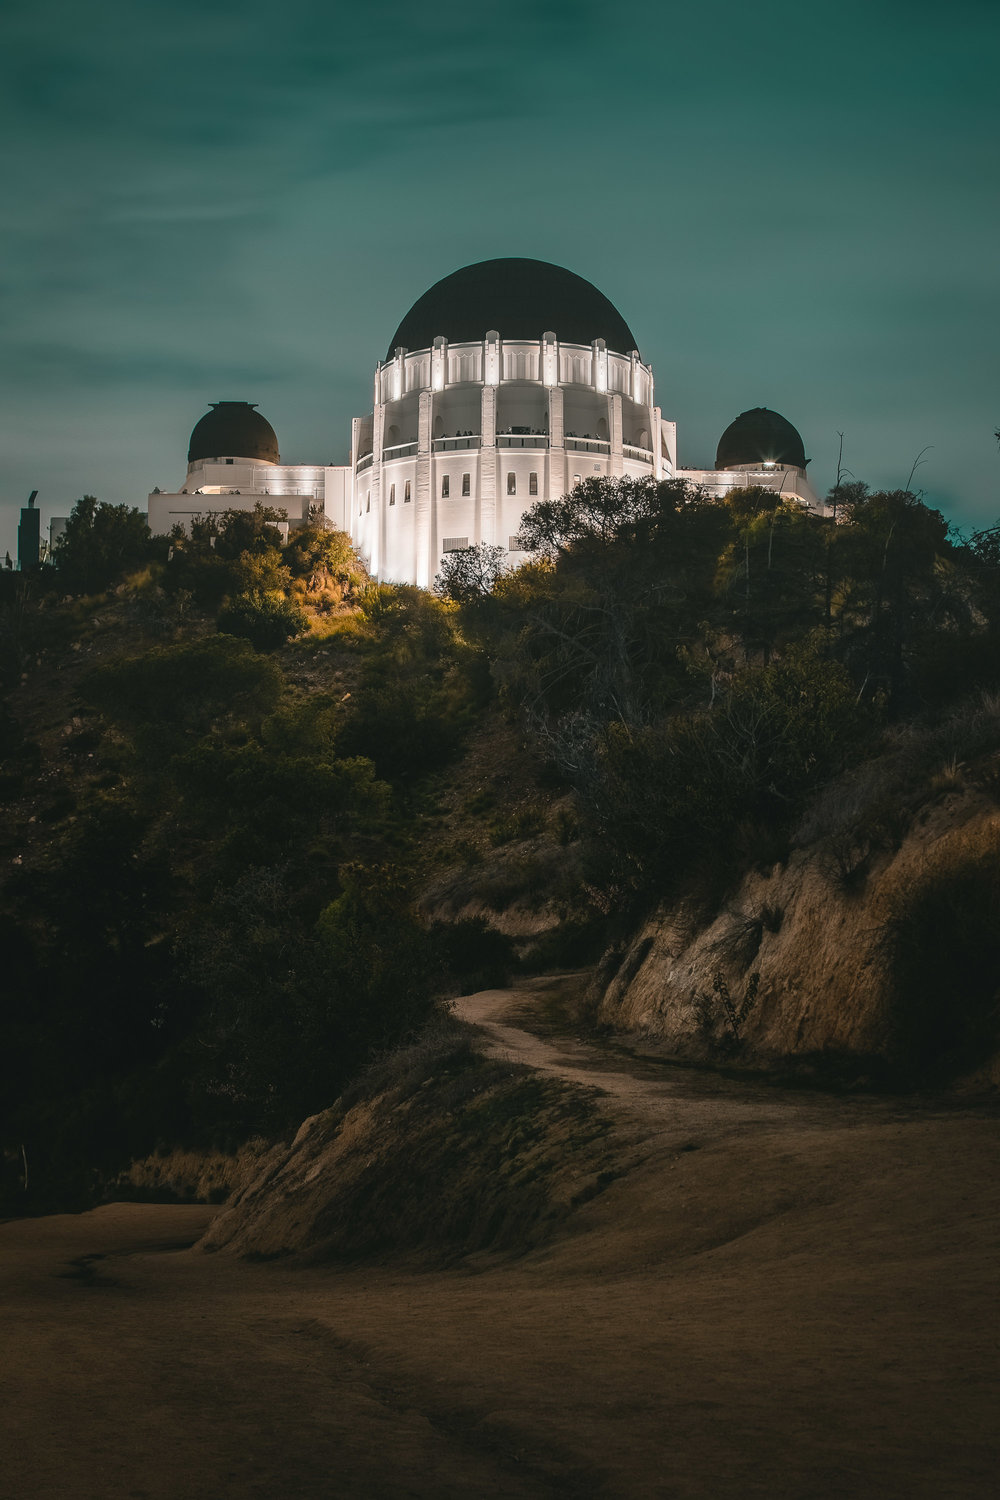 griffith_observatory-4617-Edit.jpg